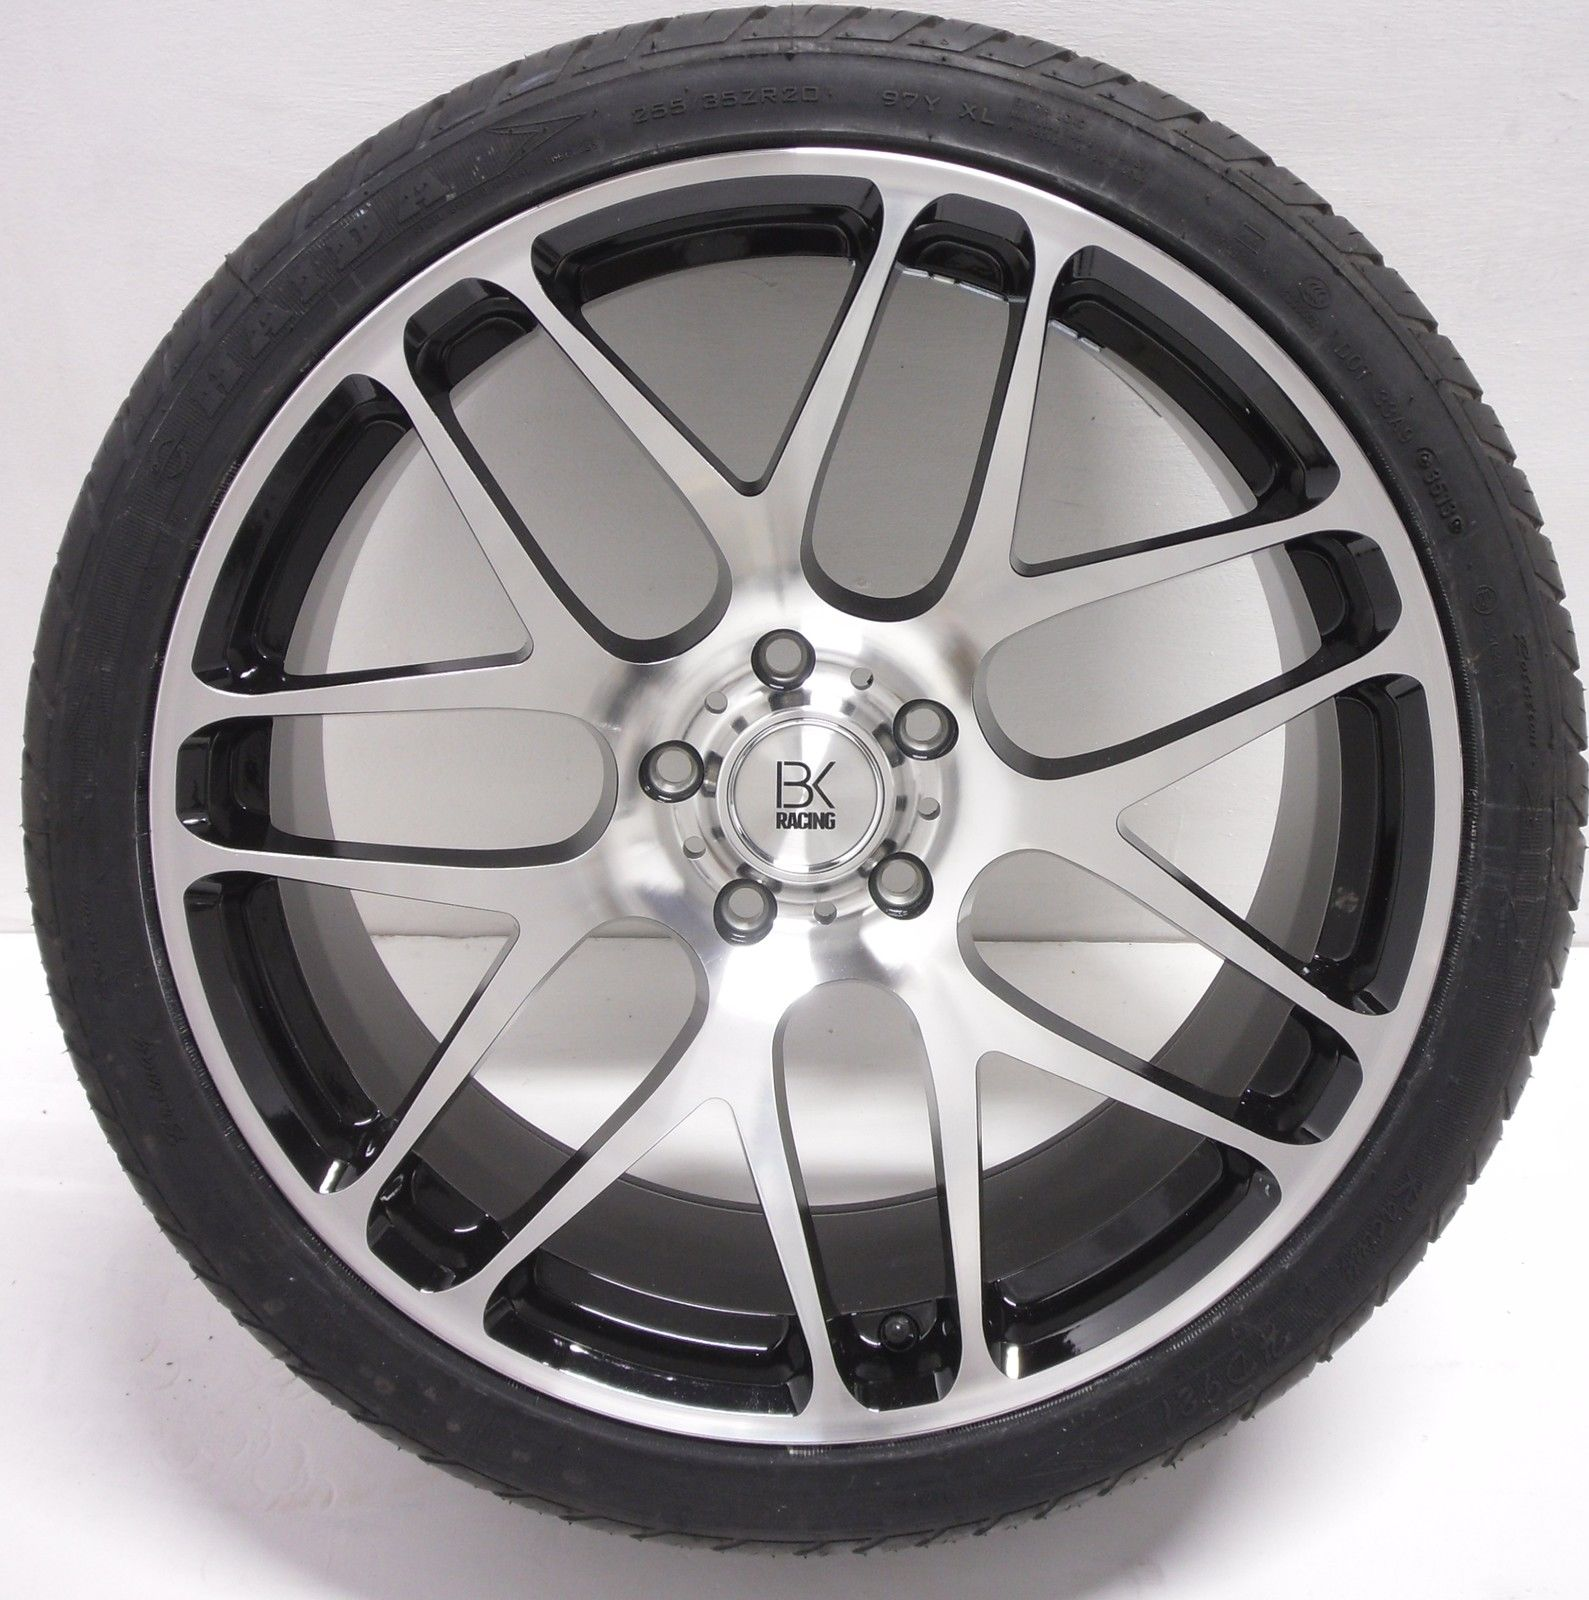 BK170 Alloy Wheels T5